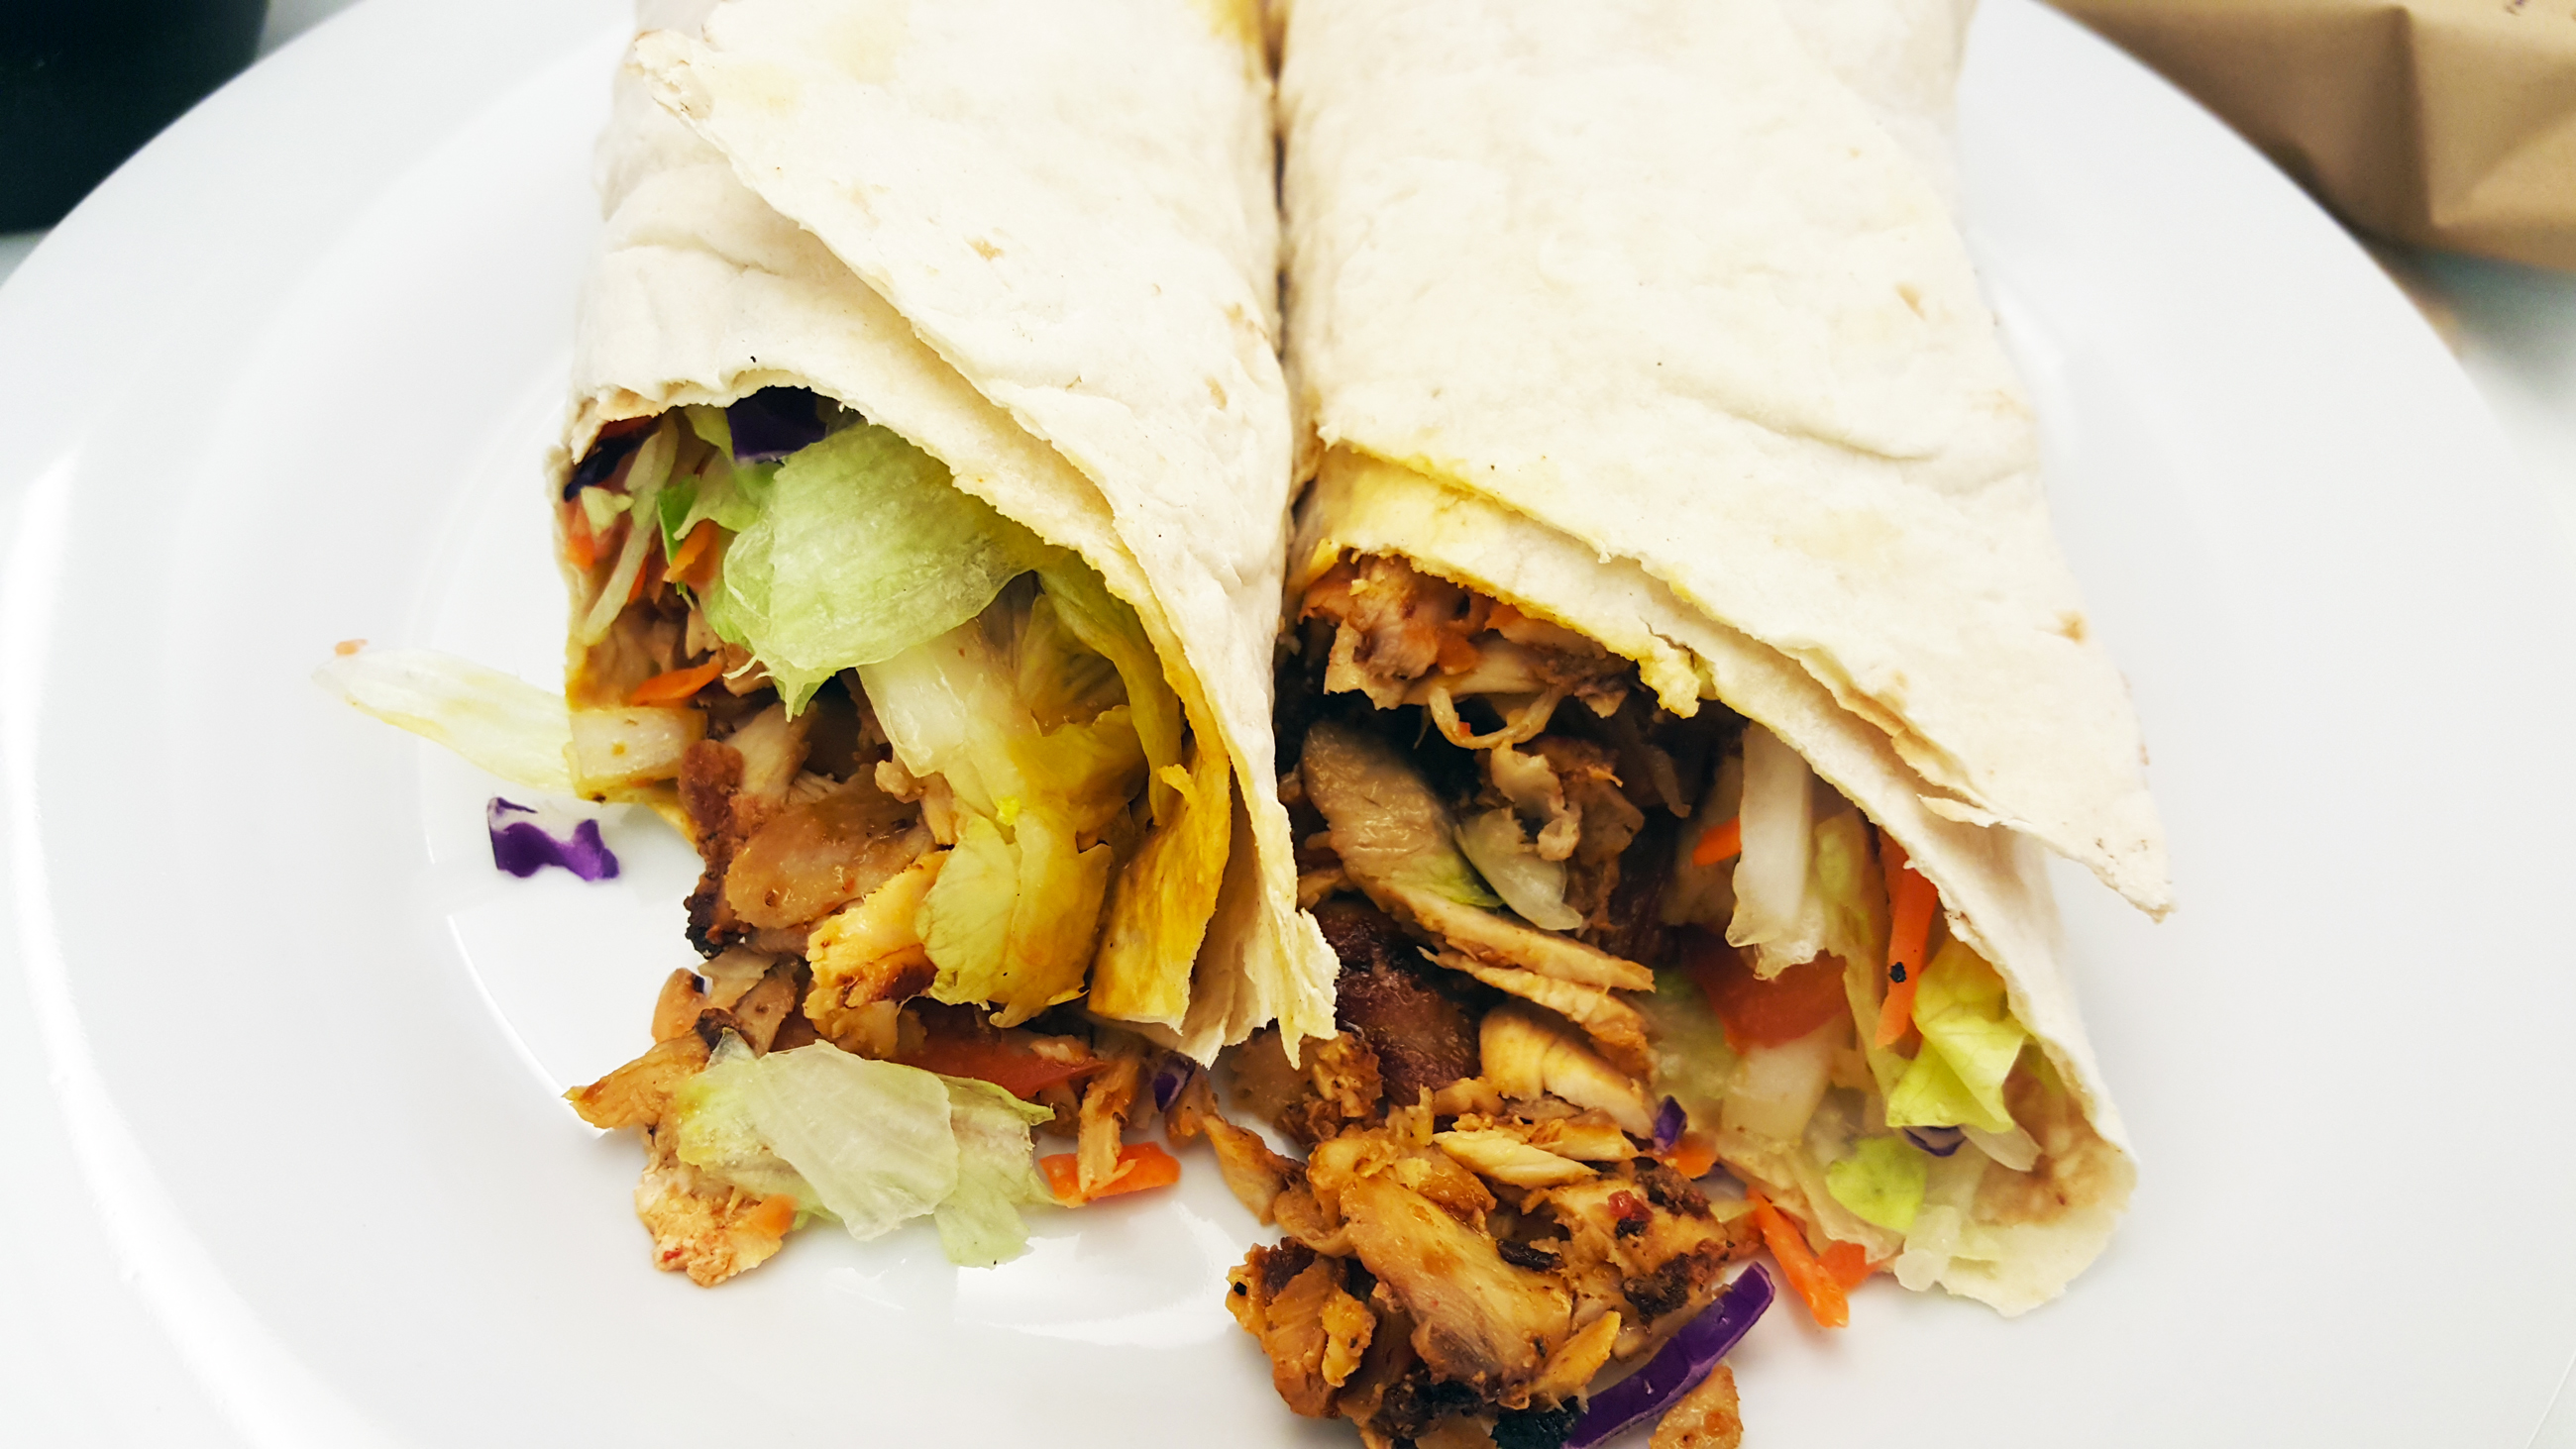 Doner Kebab A Gyros By Any Other Name Sandwich Tribunal